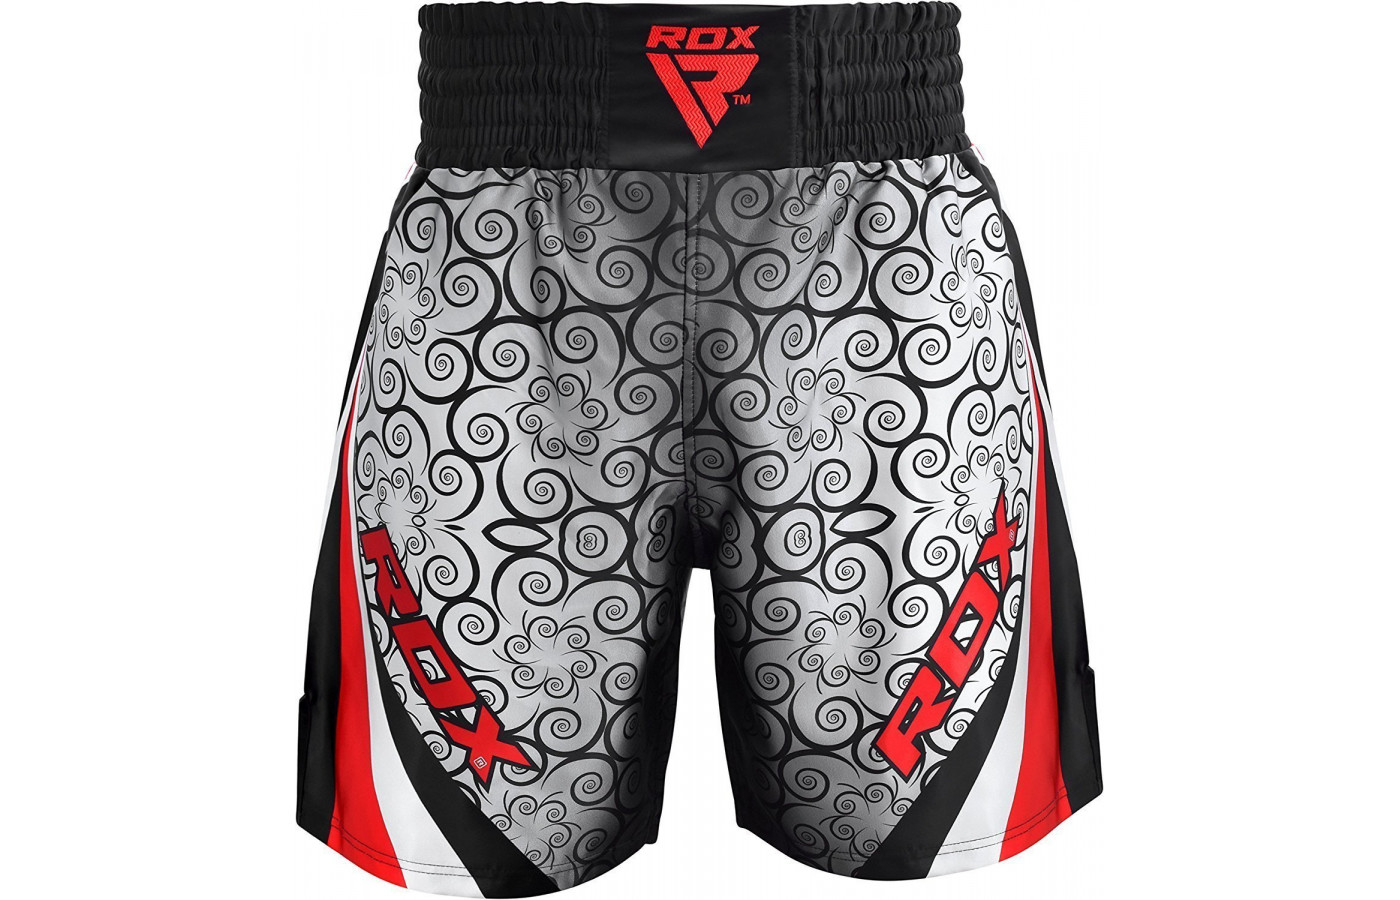 RDX Fight Shorts red and black